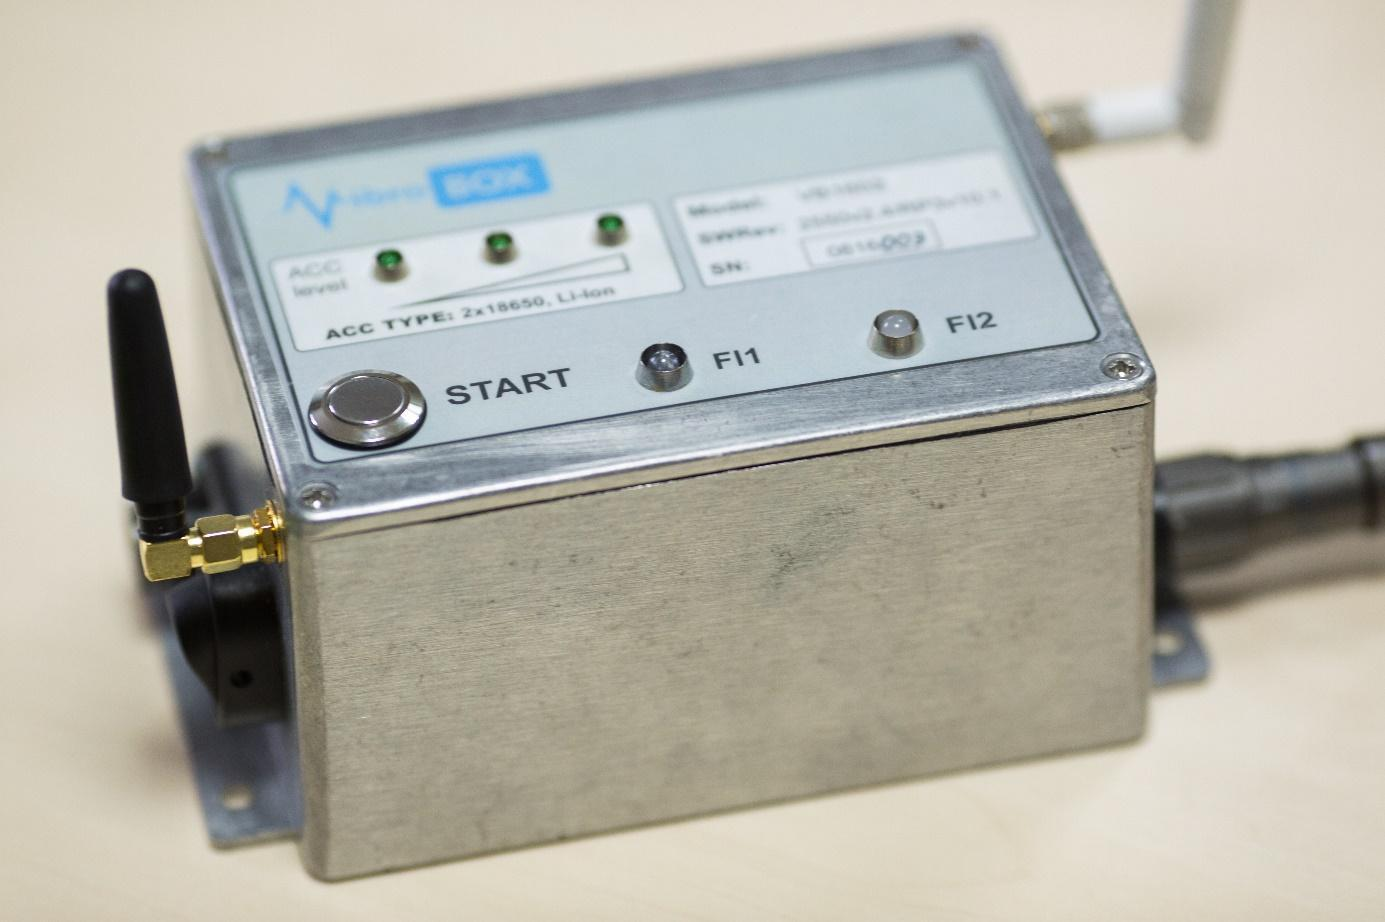 VB1610 communication and telemetry data transmission unit